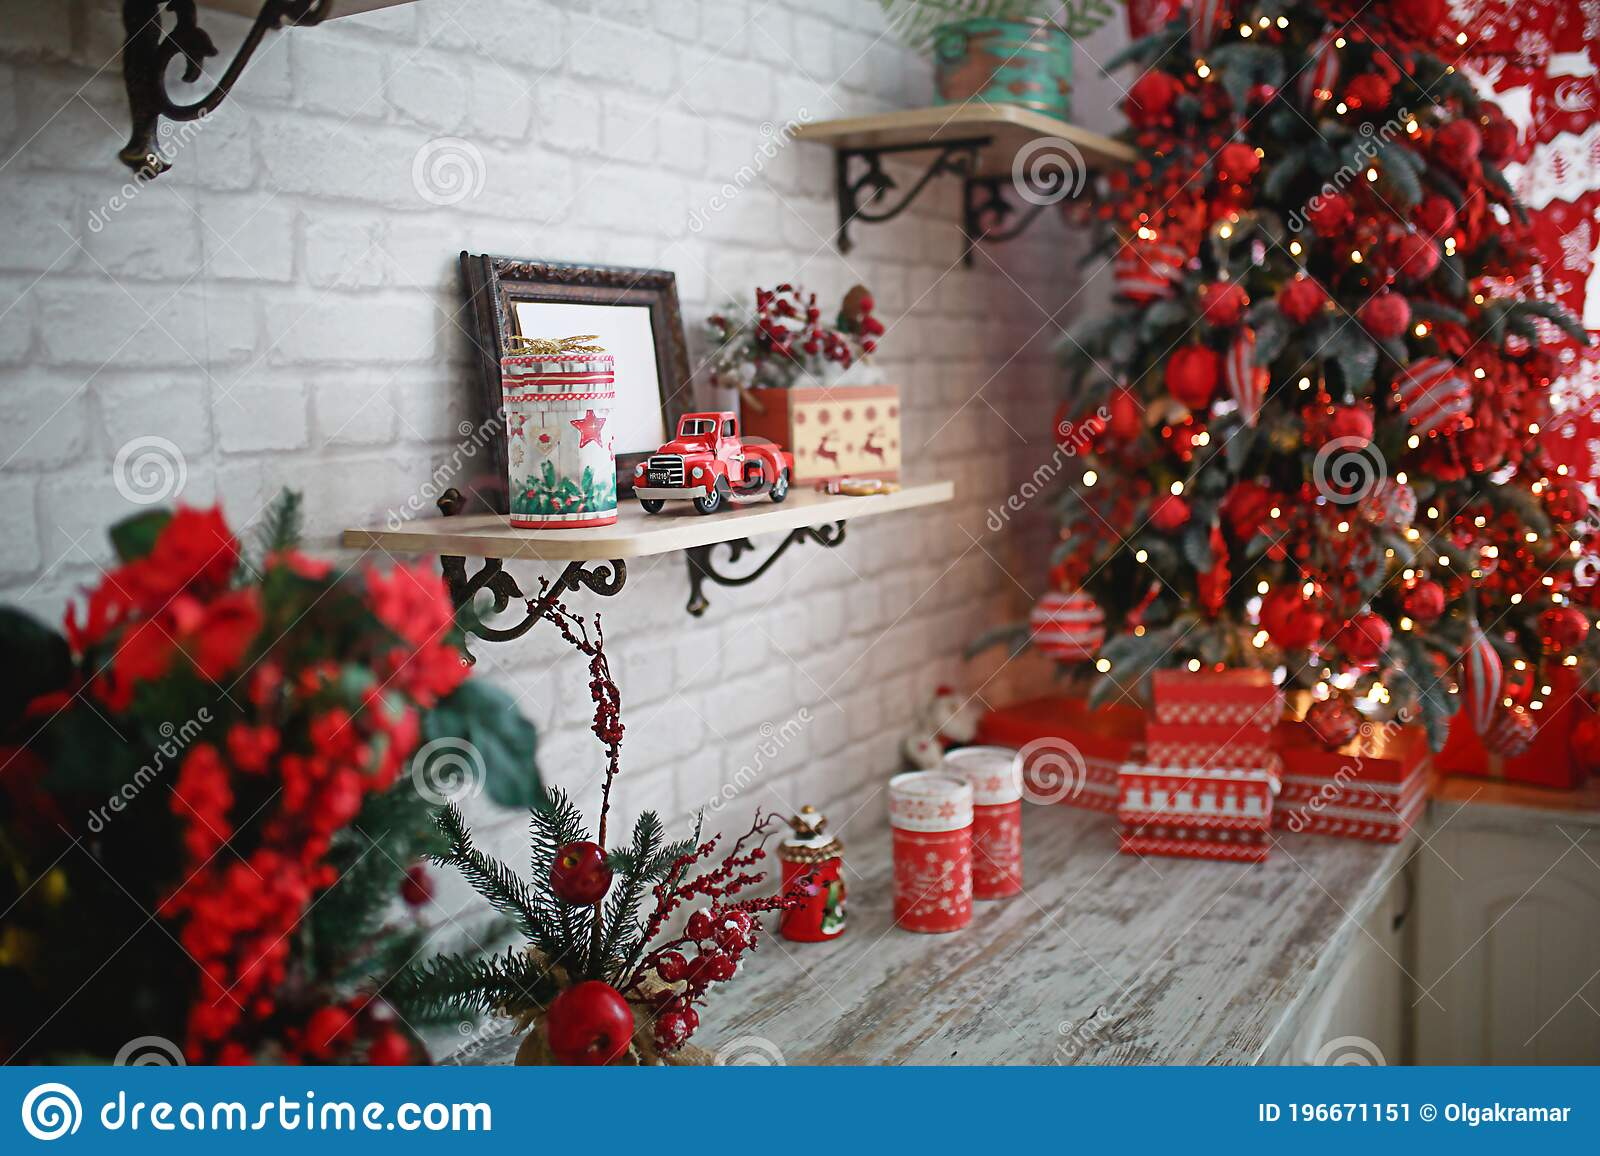 Gifts In Boxes Close Up Under A Christmas Tree With Red And White Decor In A White Living Room New Year European Style Kitchen Stock Image Image Of Home January 196671151